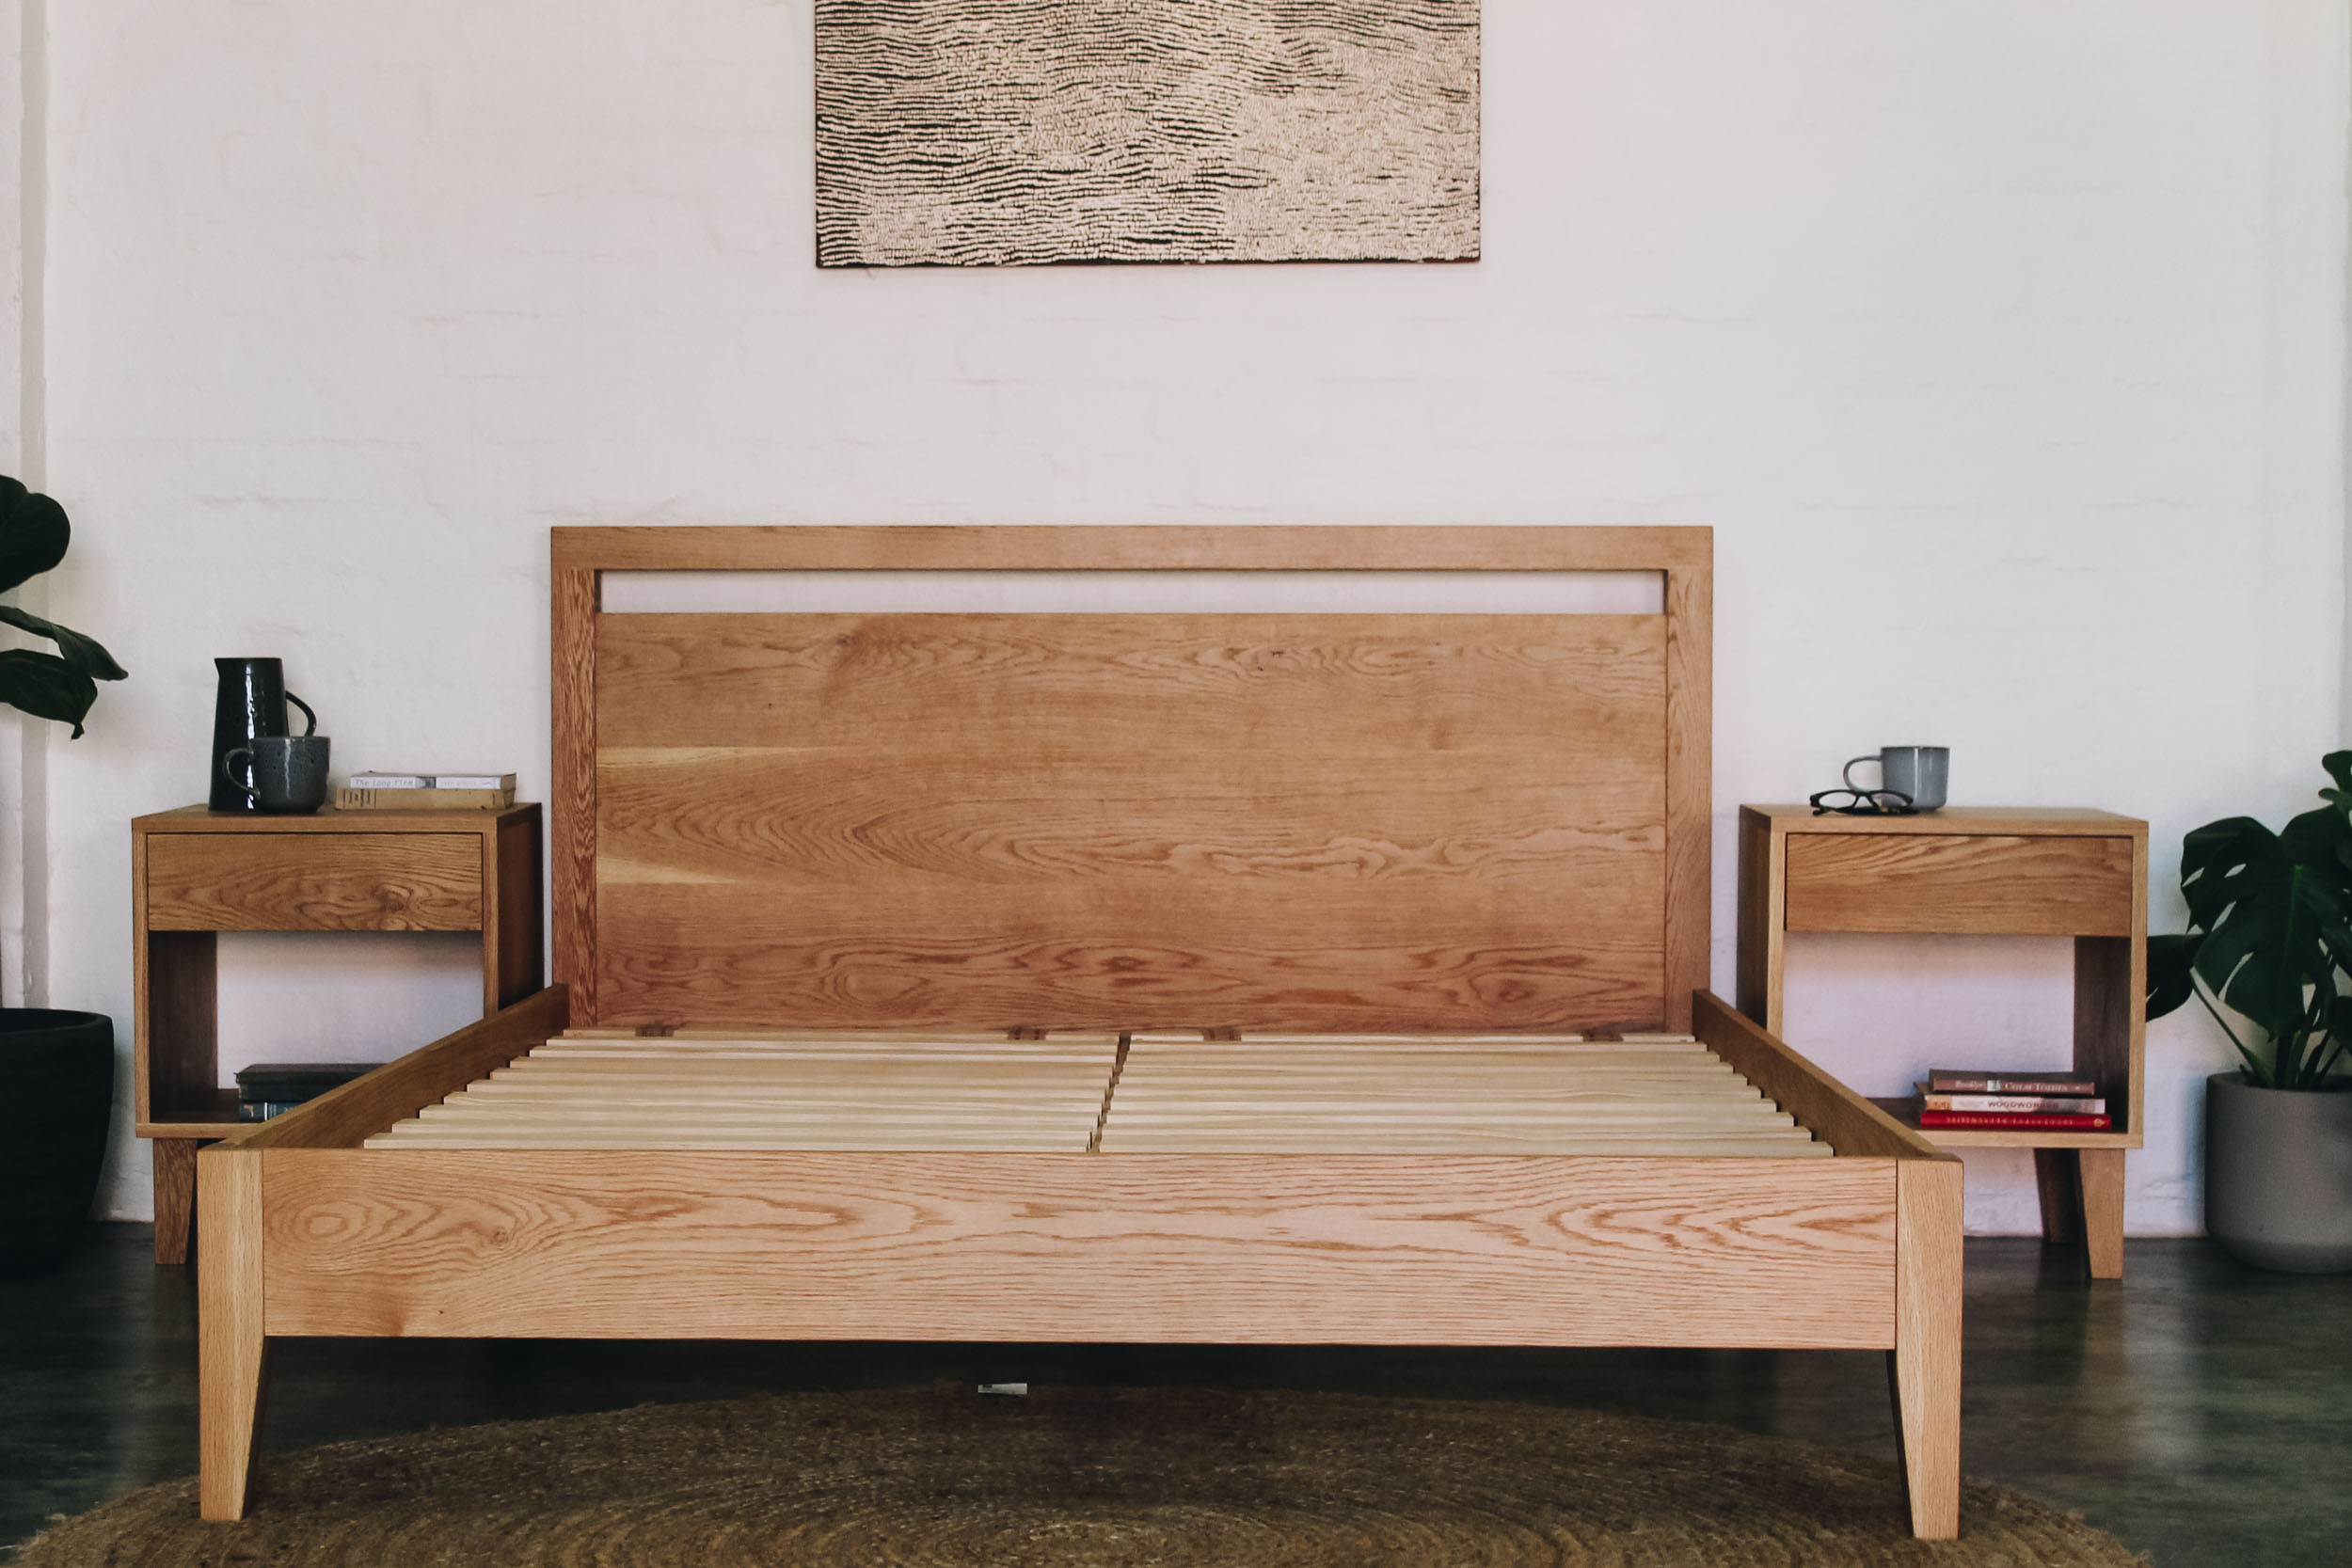 Al and Imo Handmade - American Oak Custom bed and Bedside Tables-34.jpg